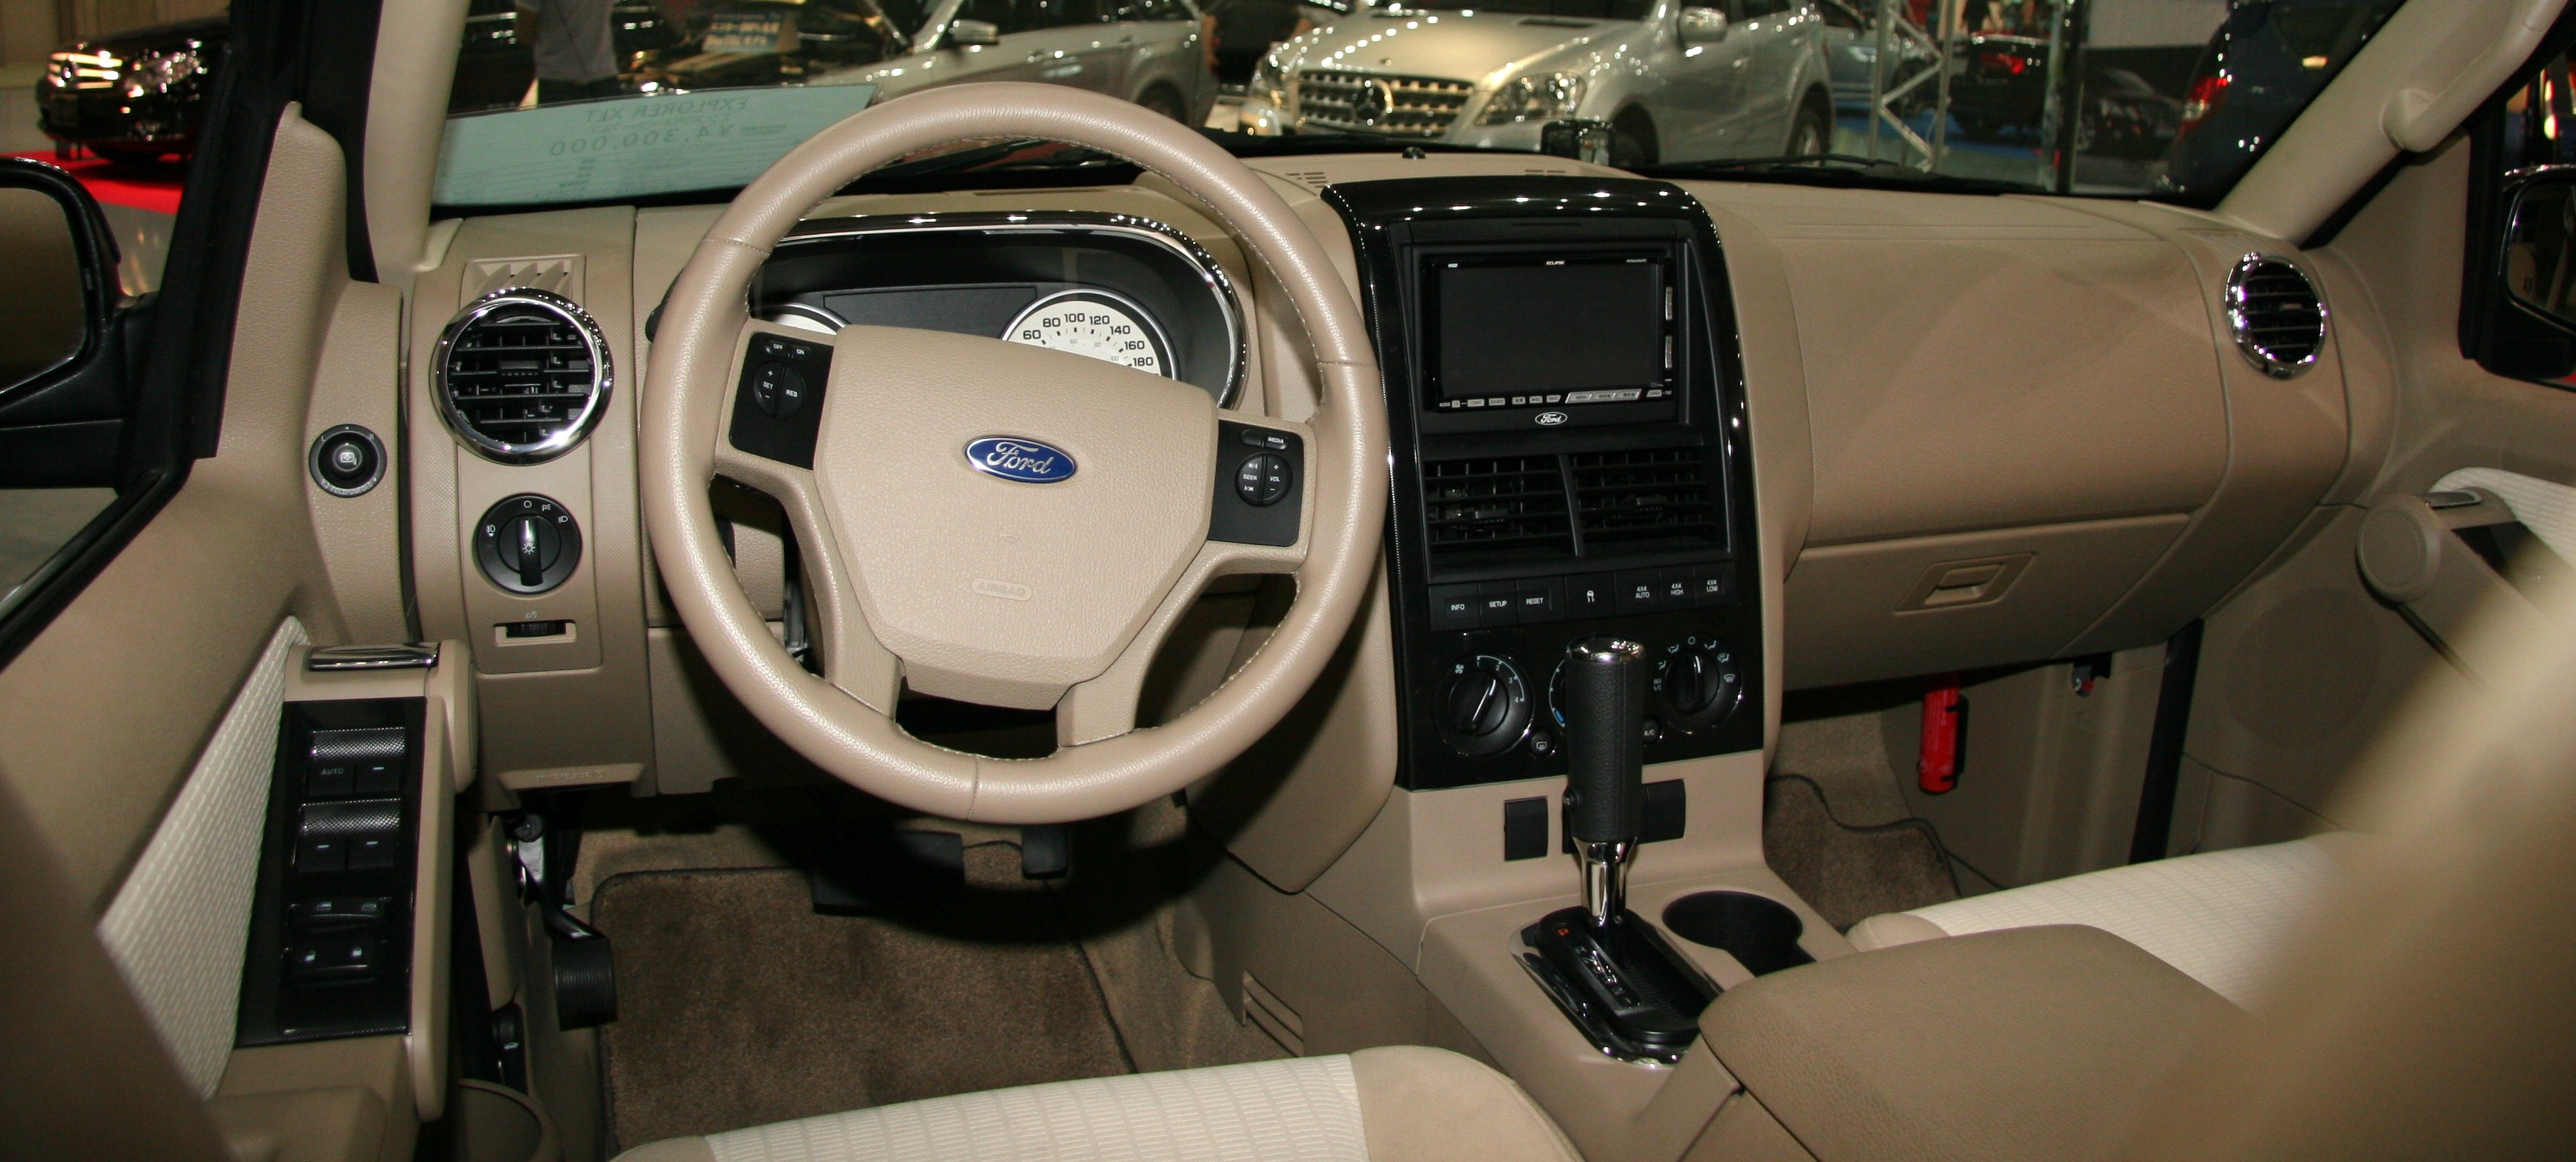 Fileford explorer xlt interior jpg